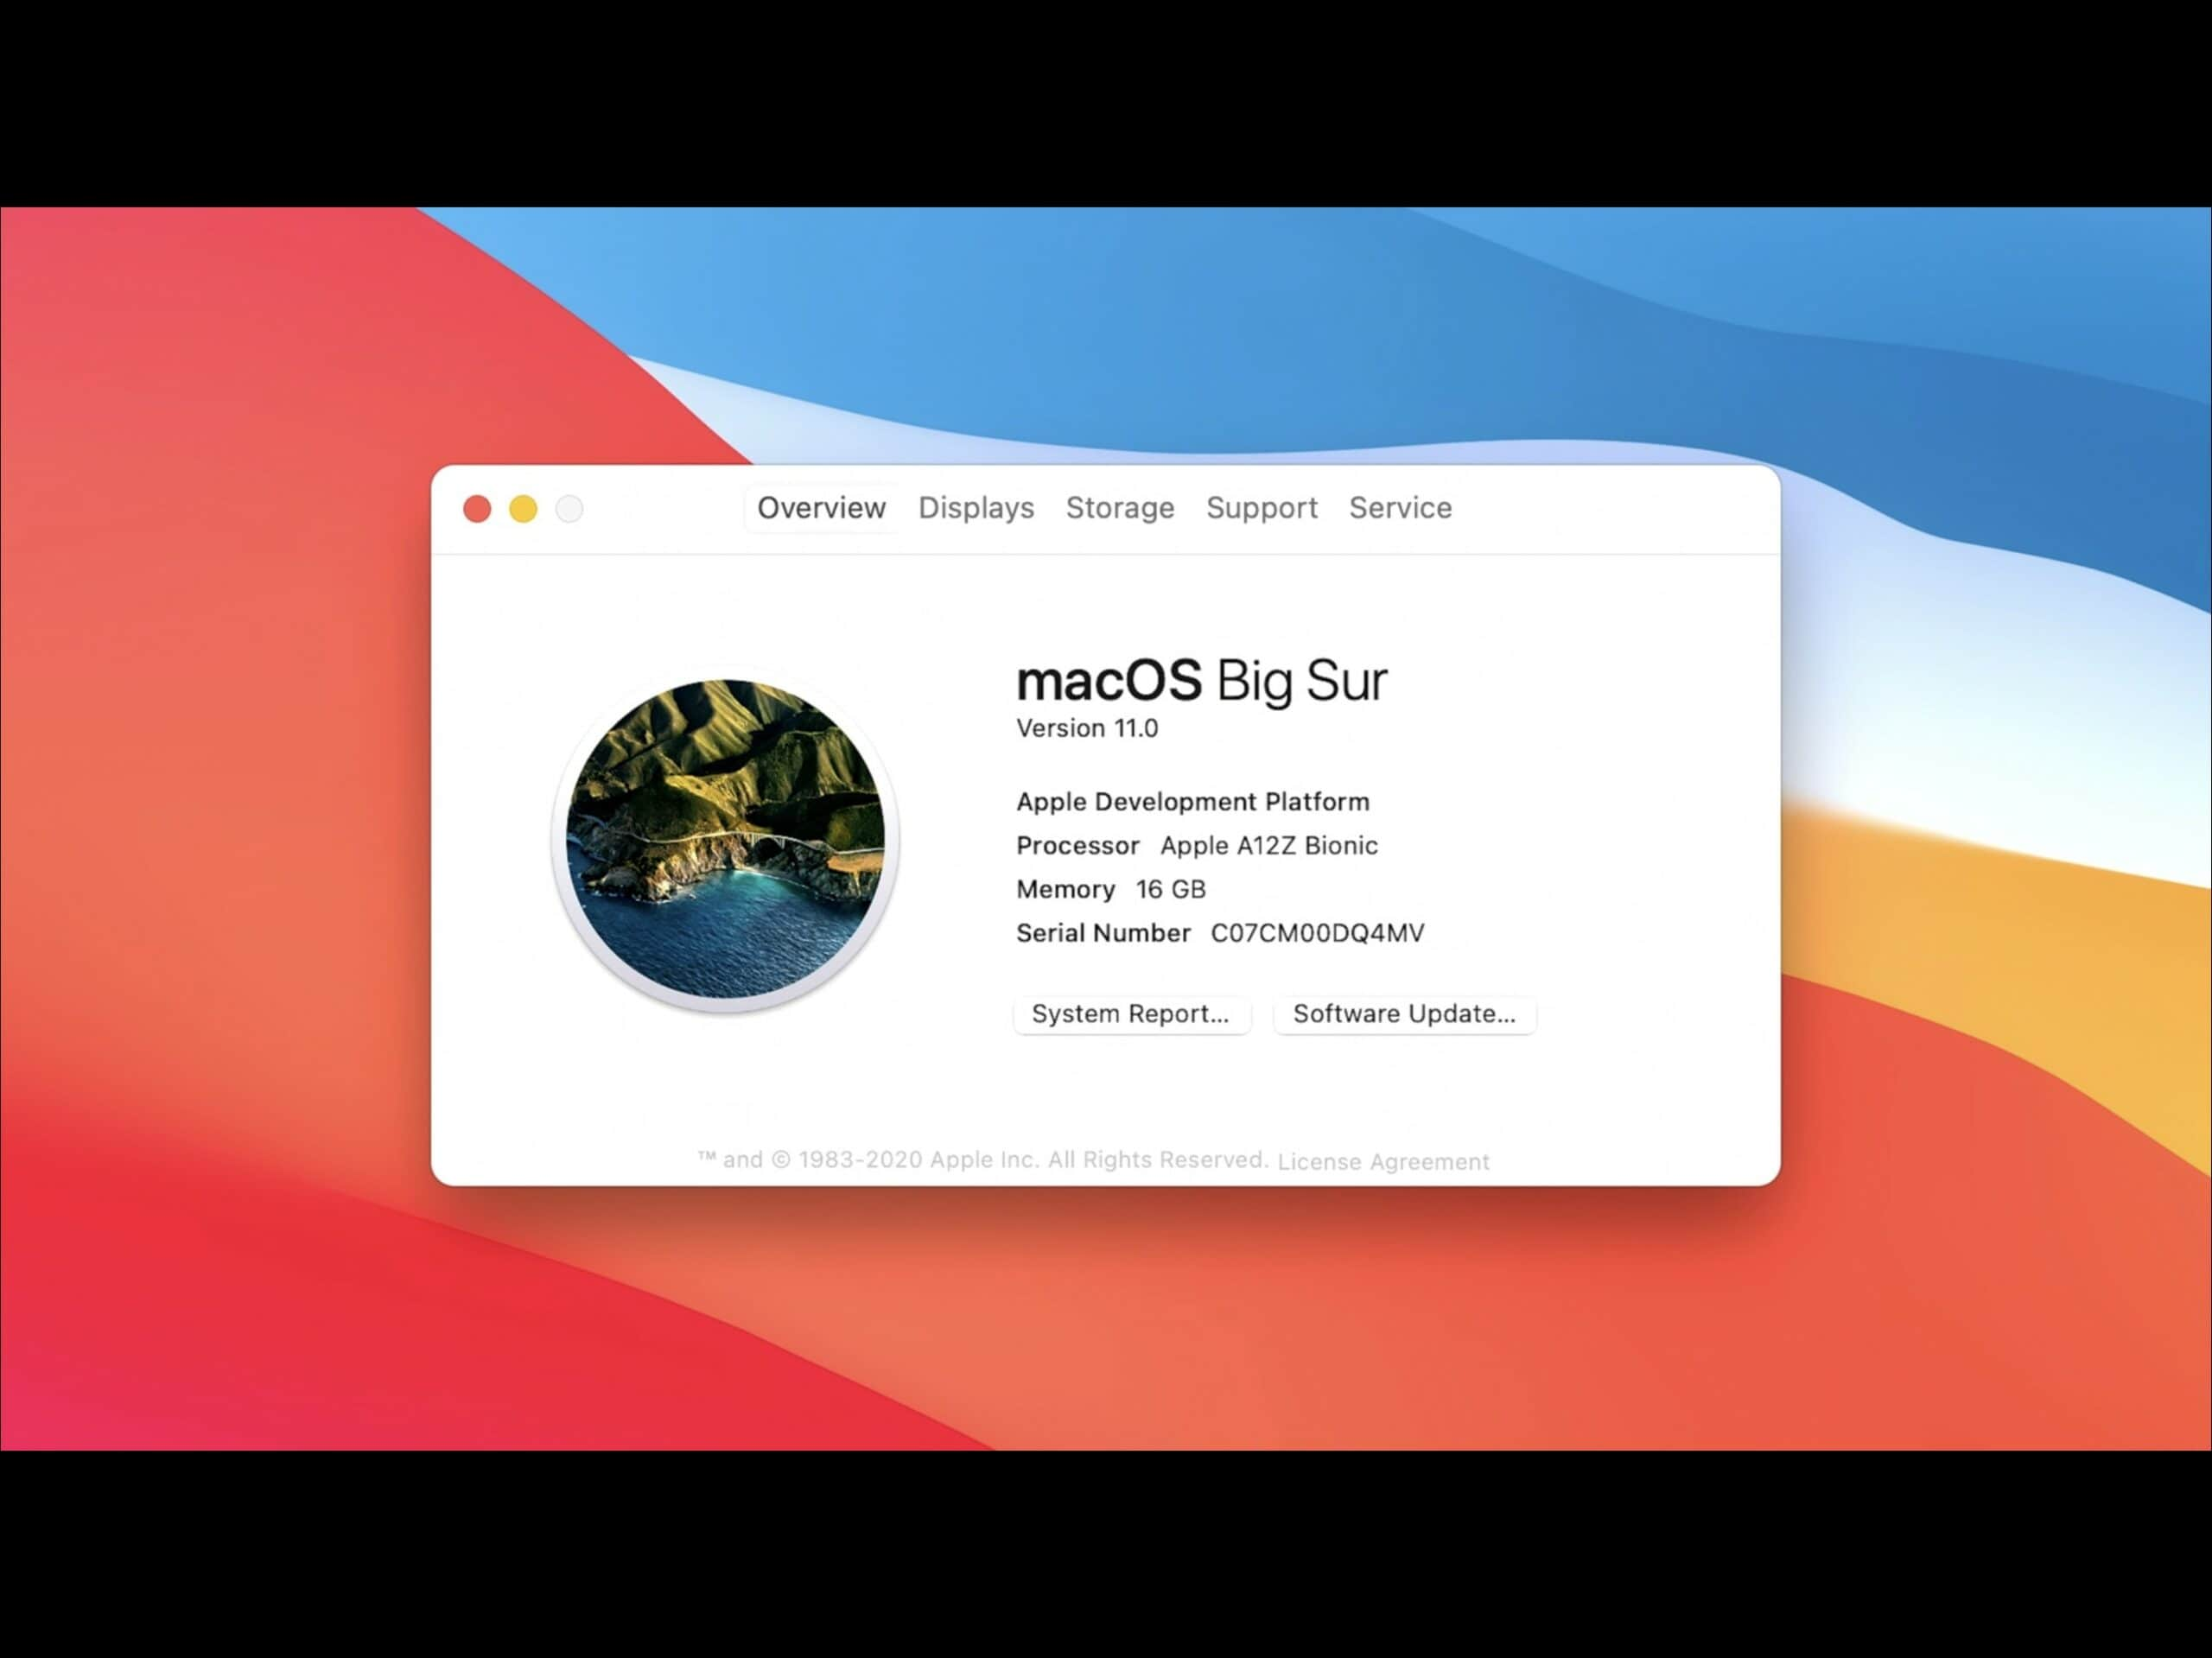 MacOS Big Sur turns the Mac operating system up to 11.